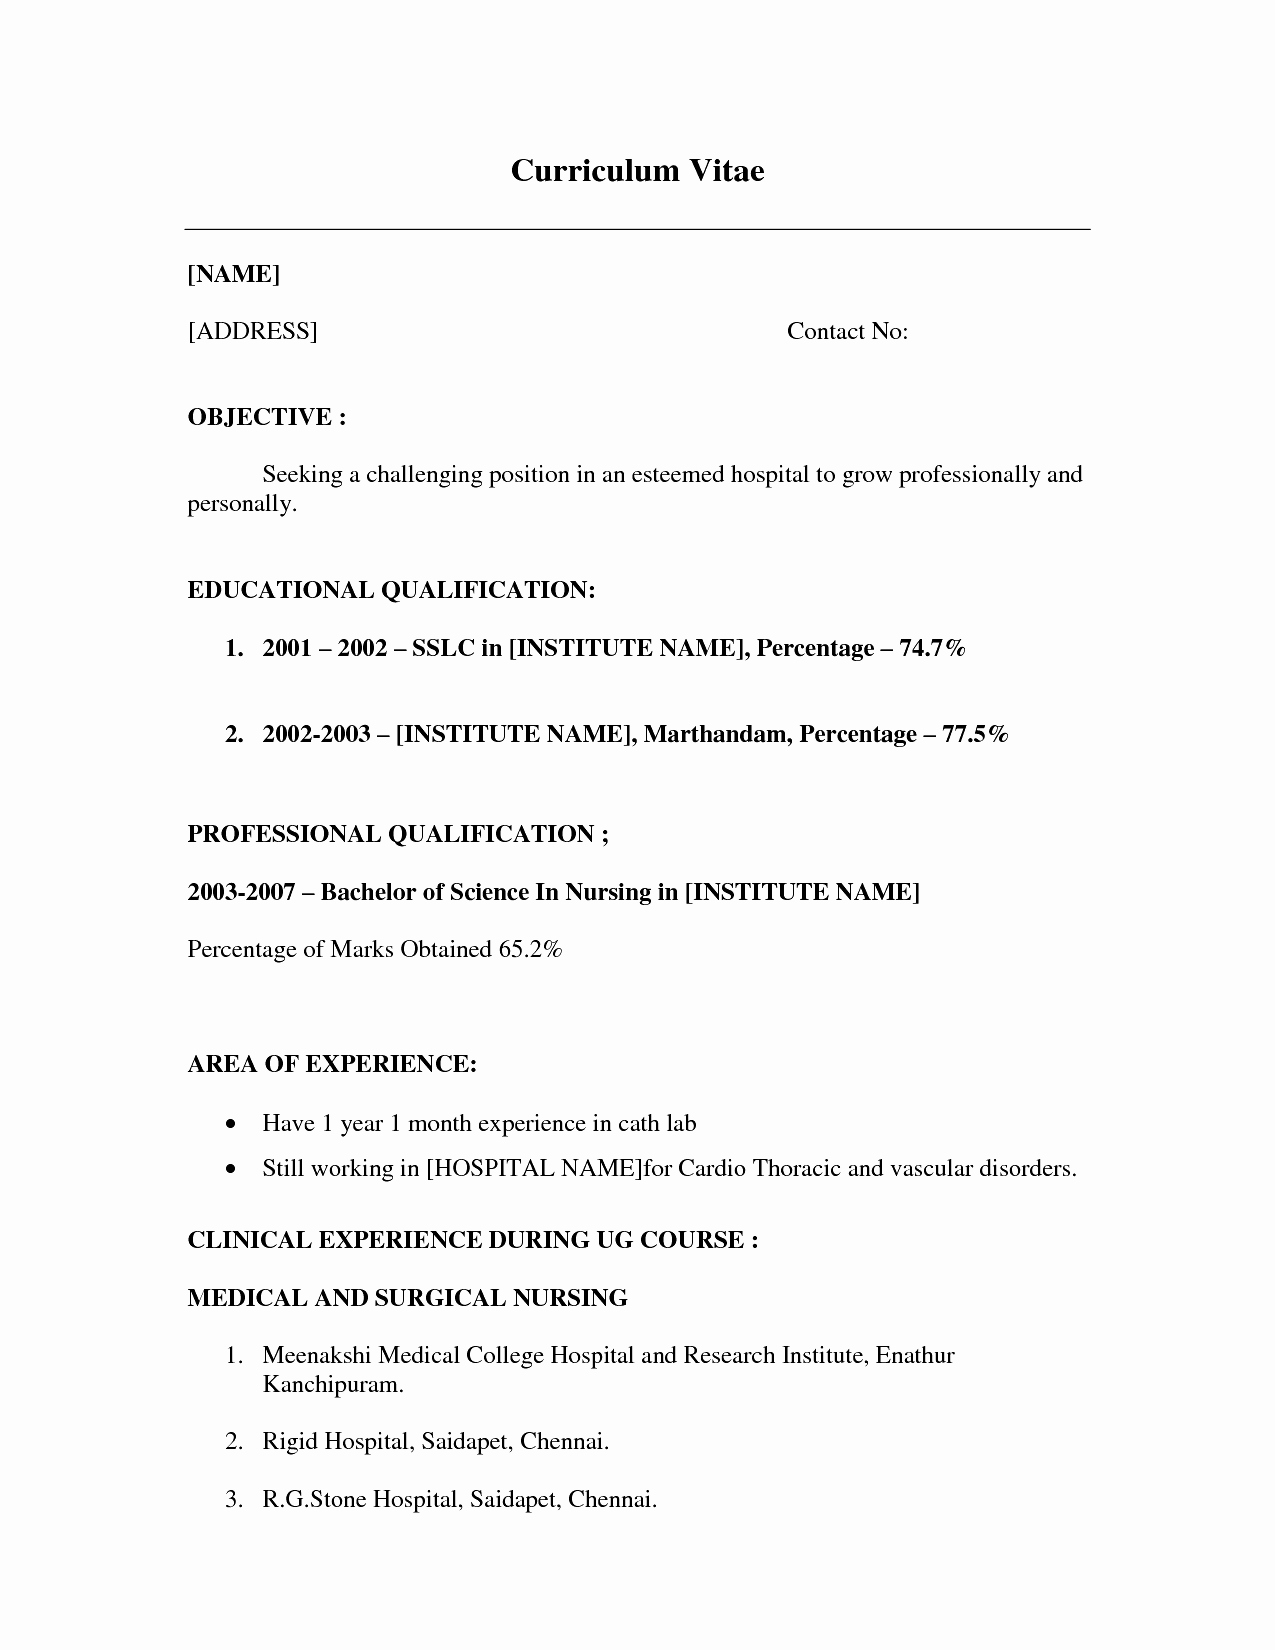 High School Job Resume New Sample Cover Letter for High School Student with No Work